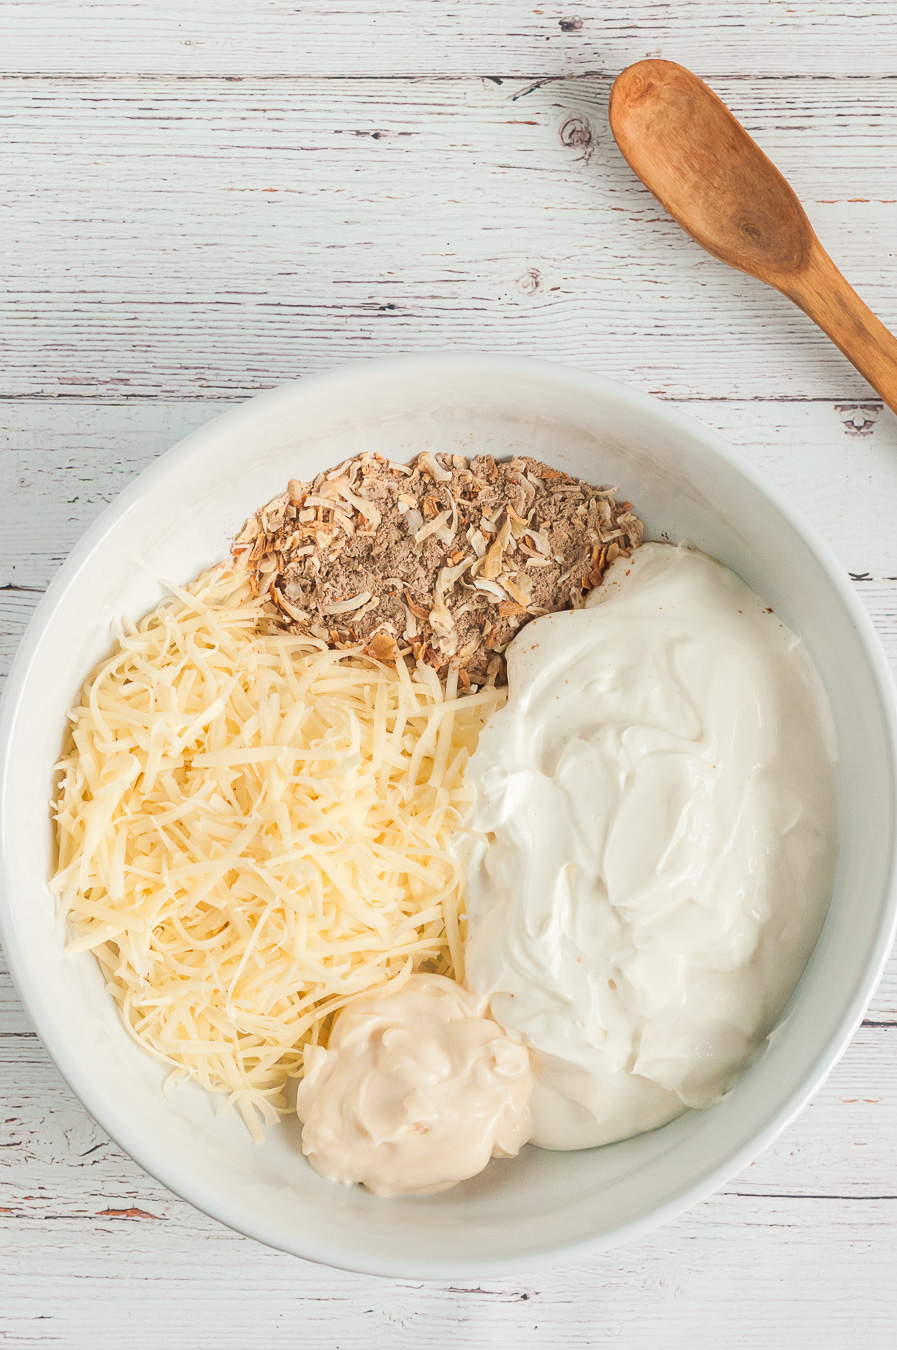 ingredients for french onion dip in a mixing bowl